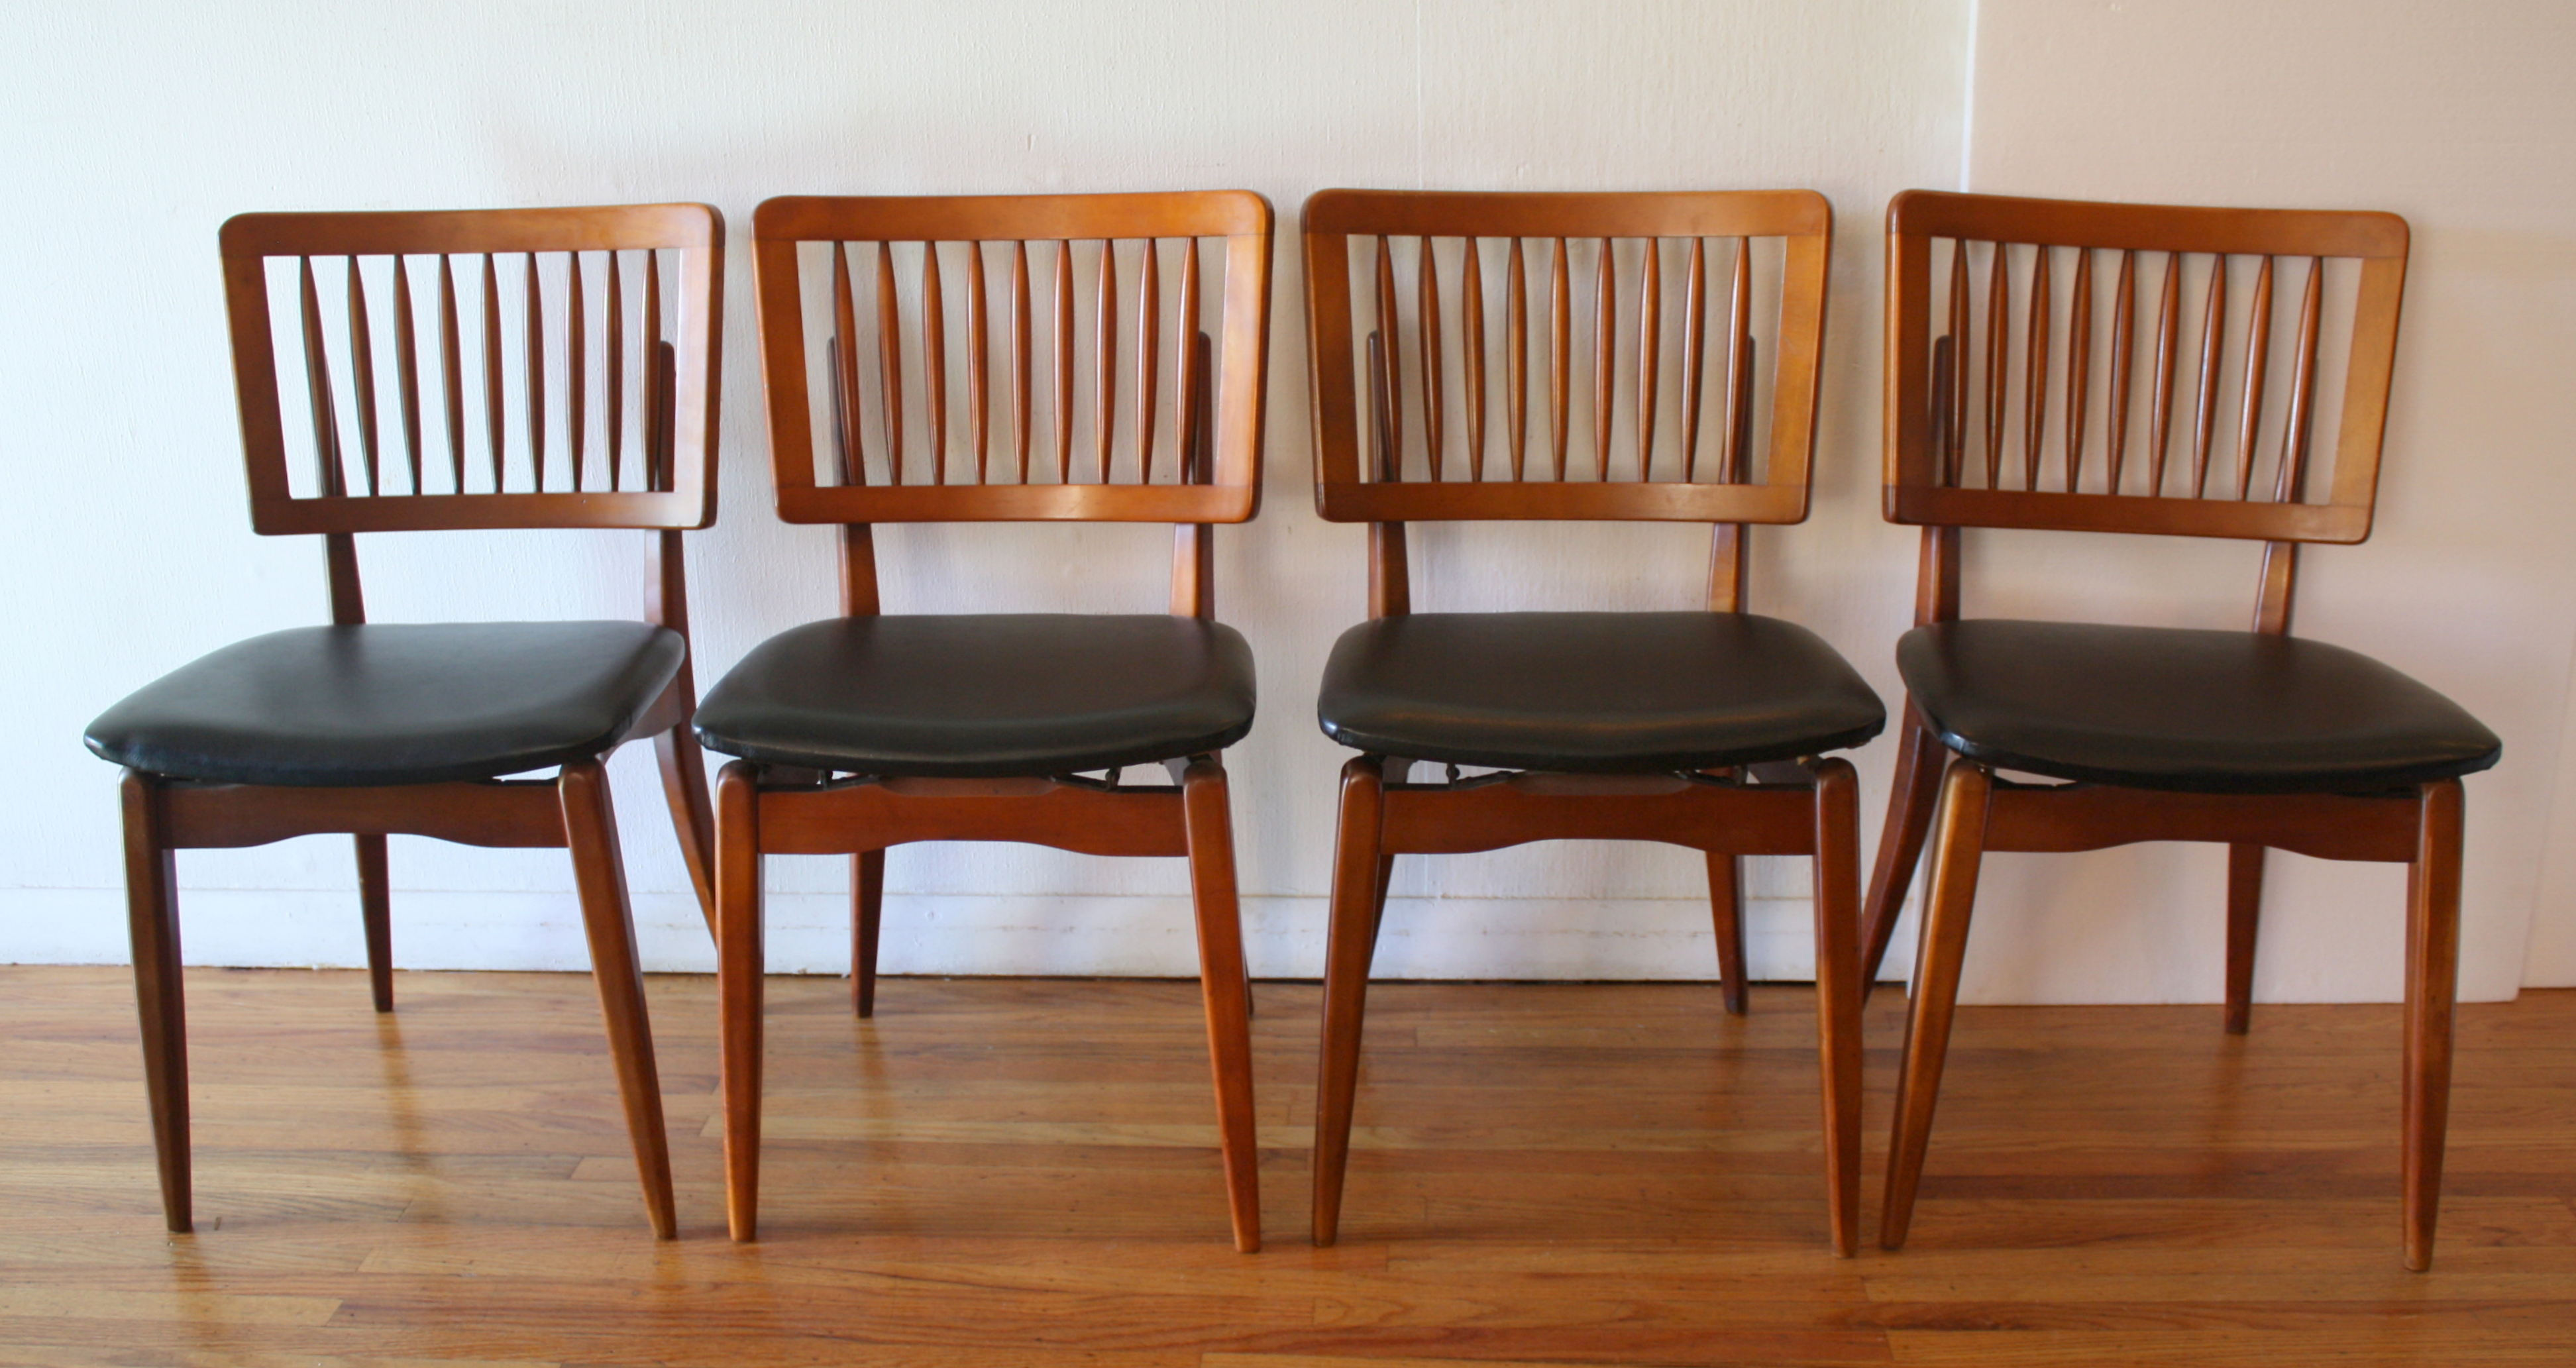 Stakmore Folding Chair Mid Century Modern Dining Chair Set By Stakmore Picked